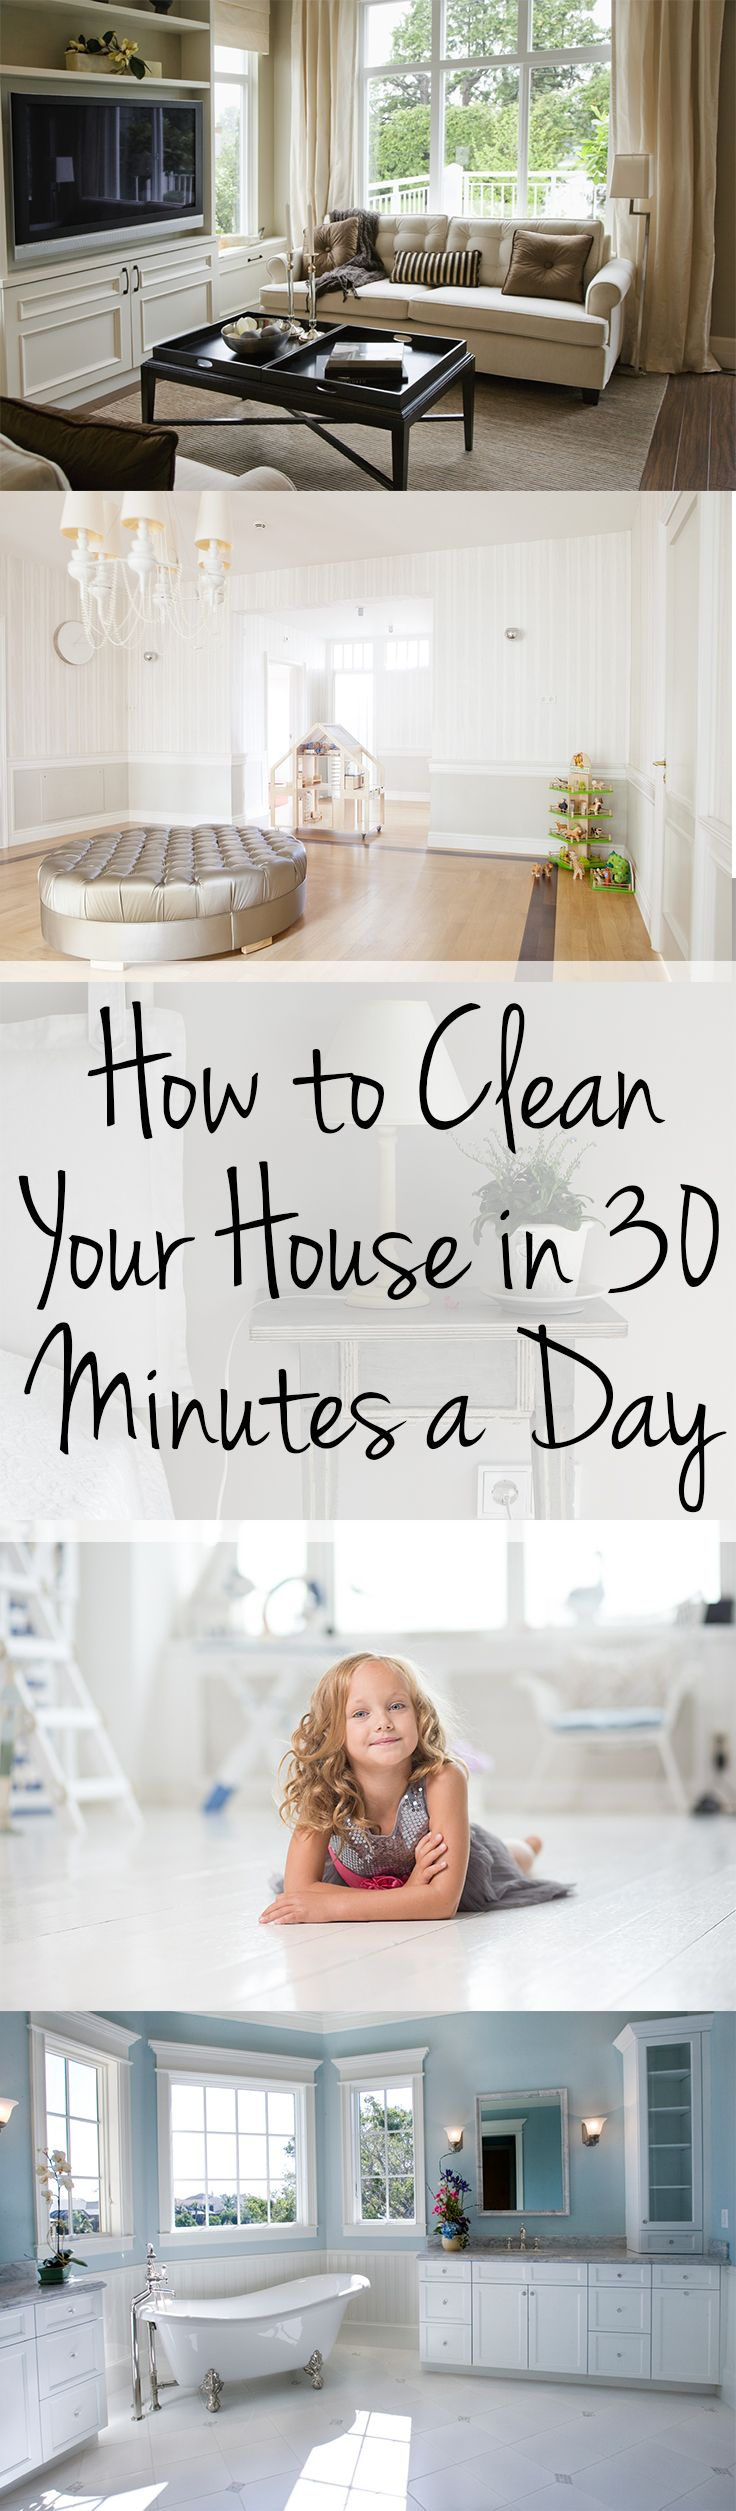 Cleaning, clean house, cleaning tips, cleaning hacks, popular pin, DIY cleaning, home cleaning, clutter free life, clutter free living hacks.